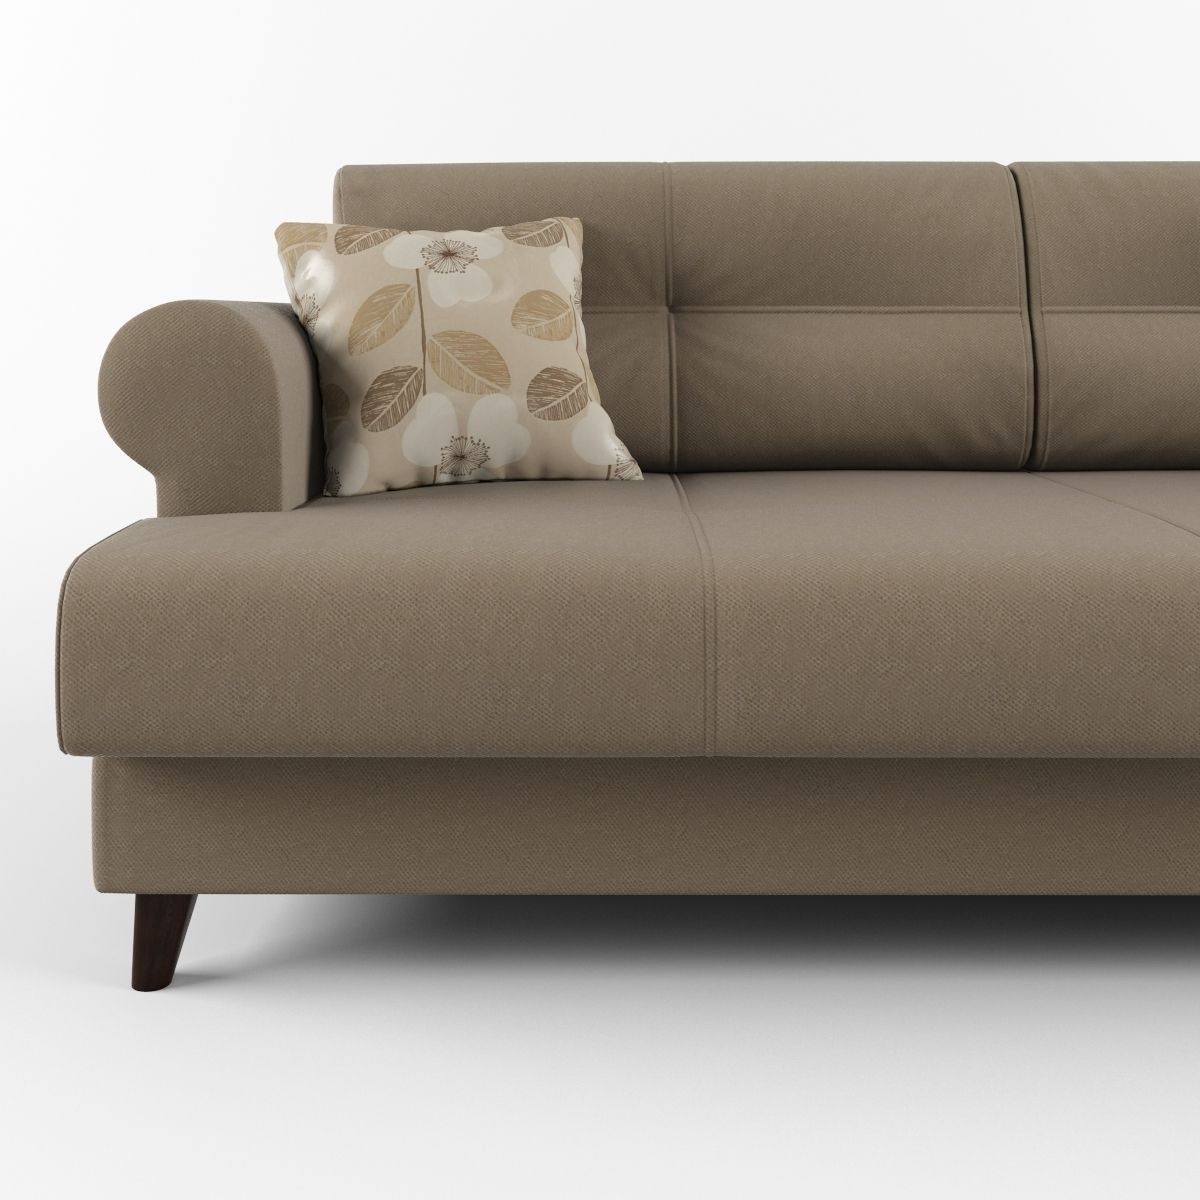 Sofa With Cushions And Round Armrests 3d Model Max Obj Fbx